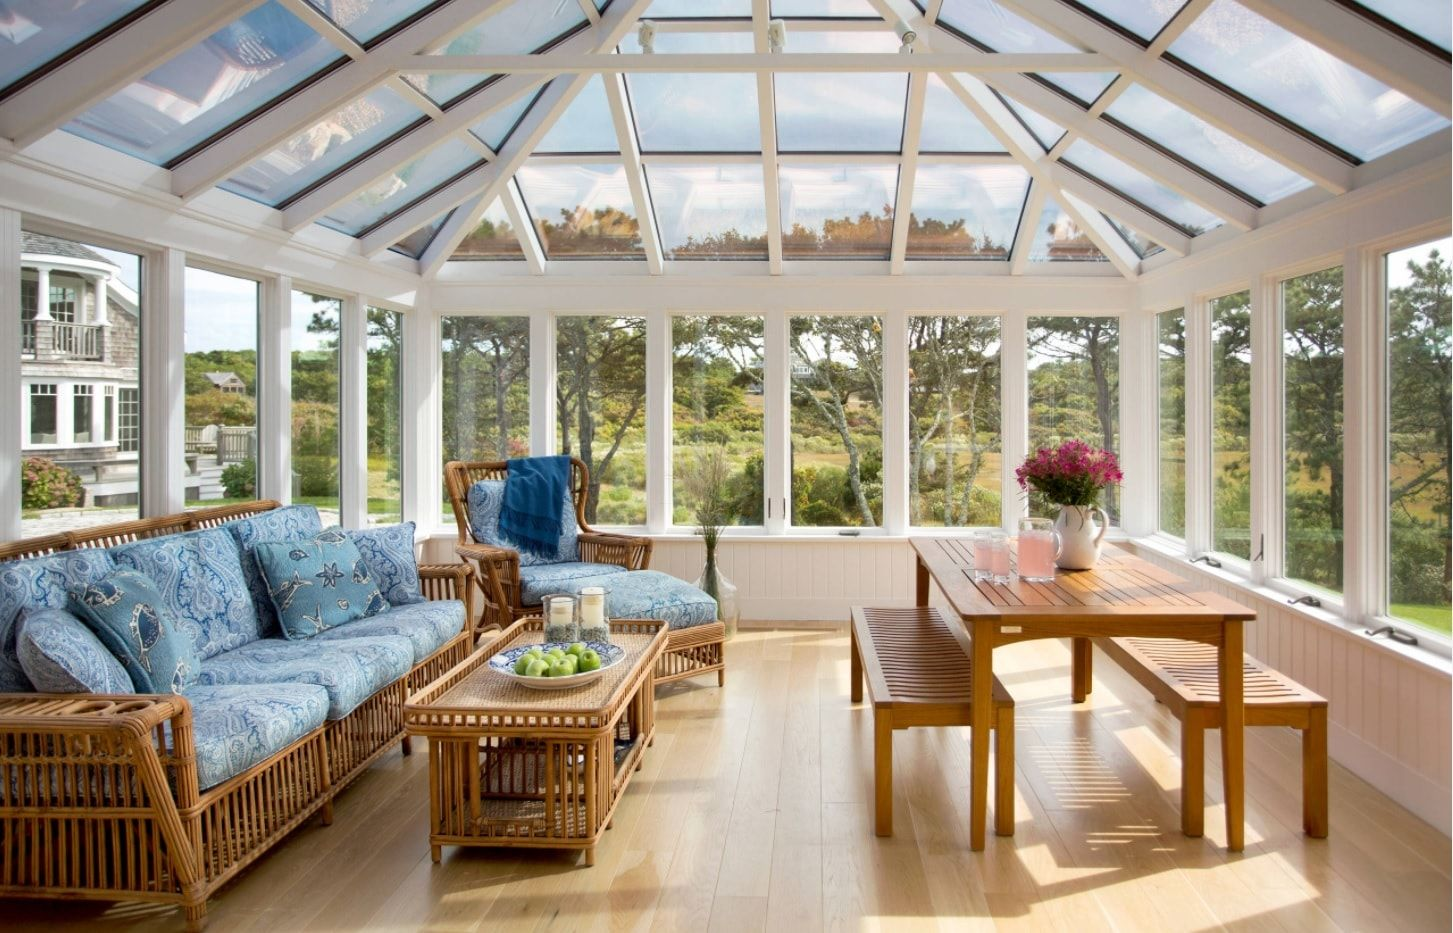 White painted frame for the glass dome of the bright sunroom for leisure